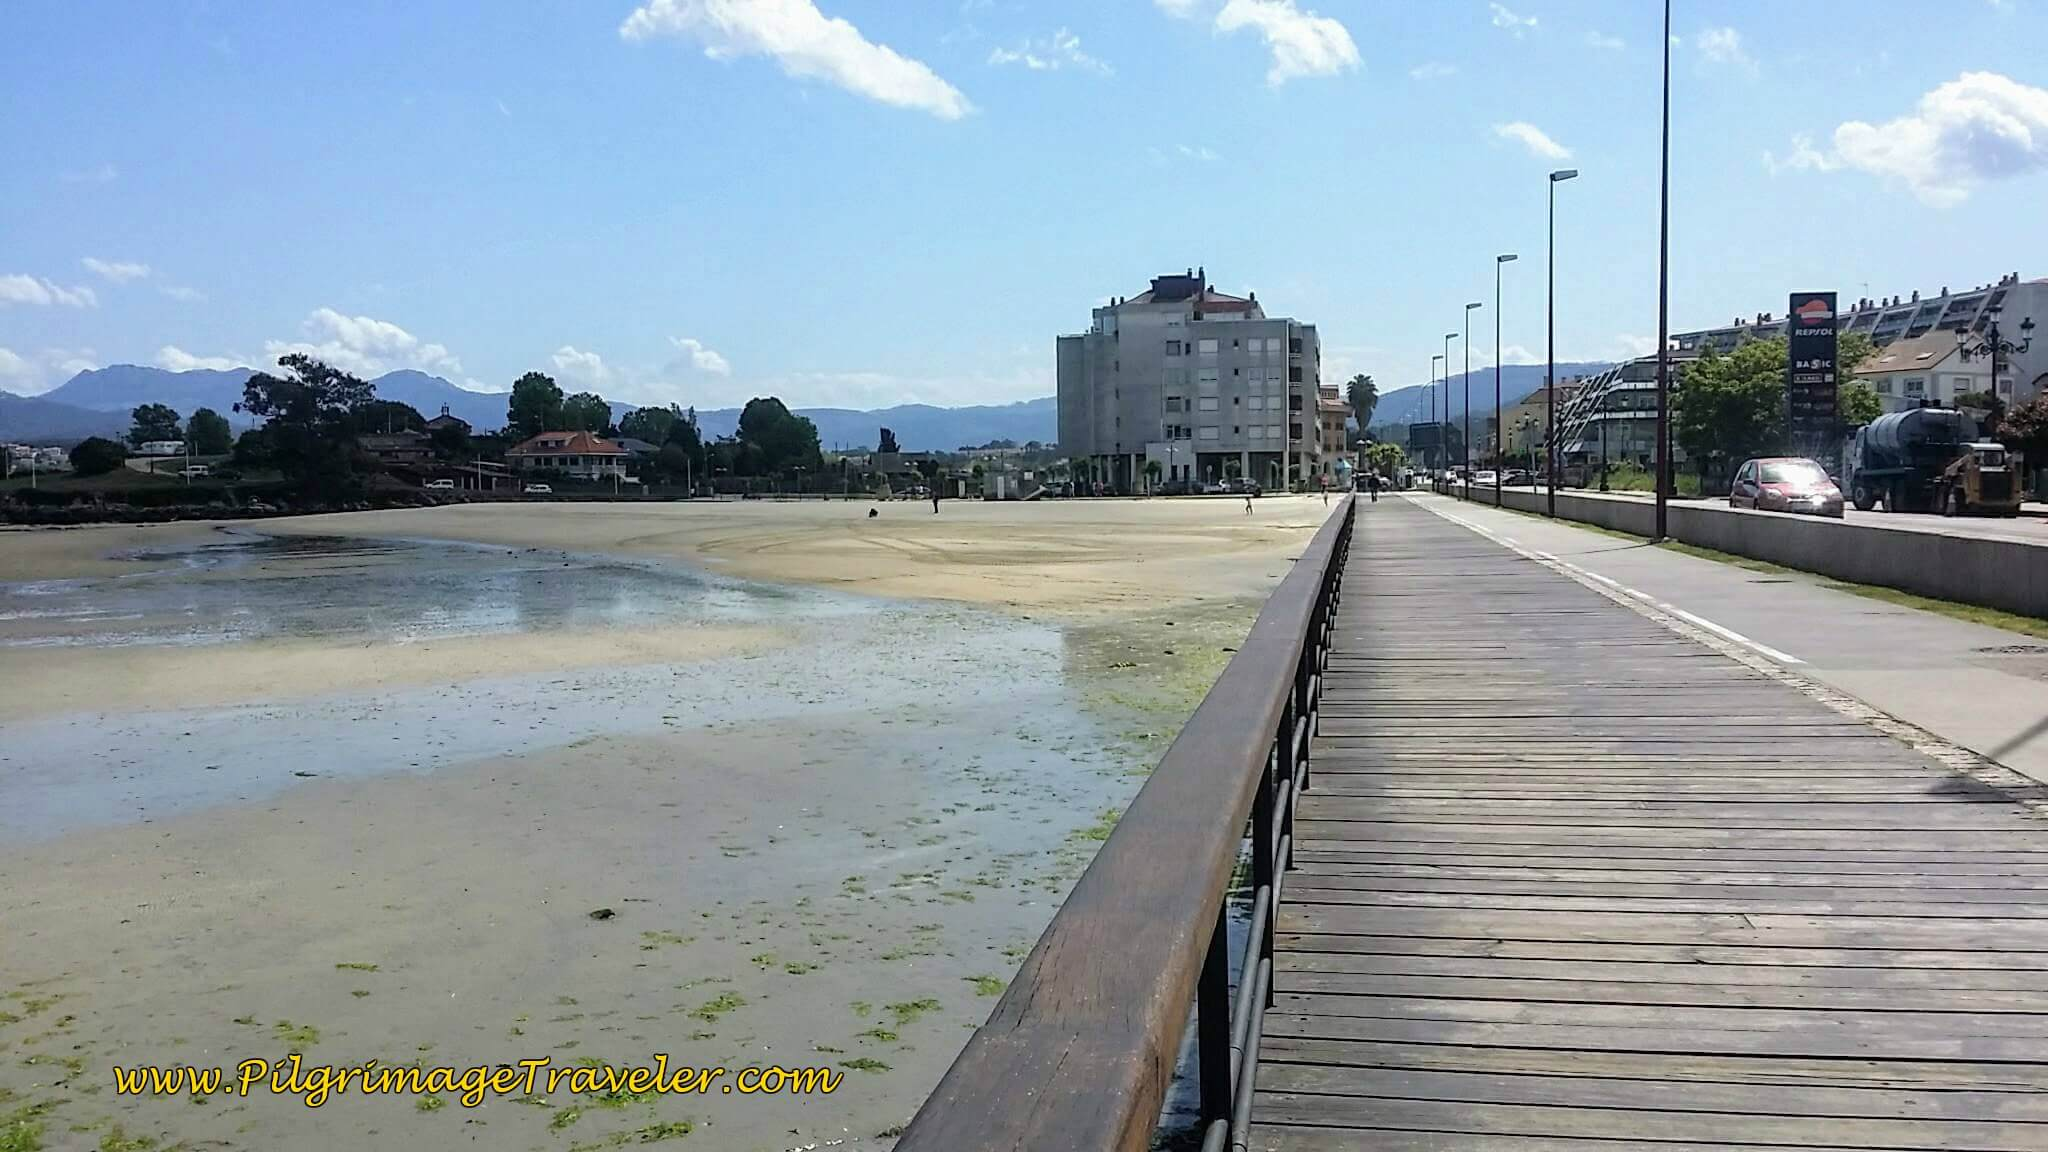 Boardwalk to the Praia de Santa Marta along the waterfront of Baiona on day twenty, Camino Portugués da Costa.